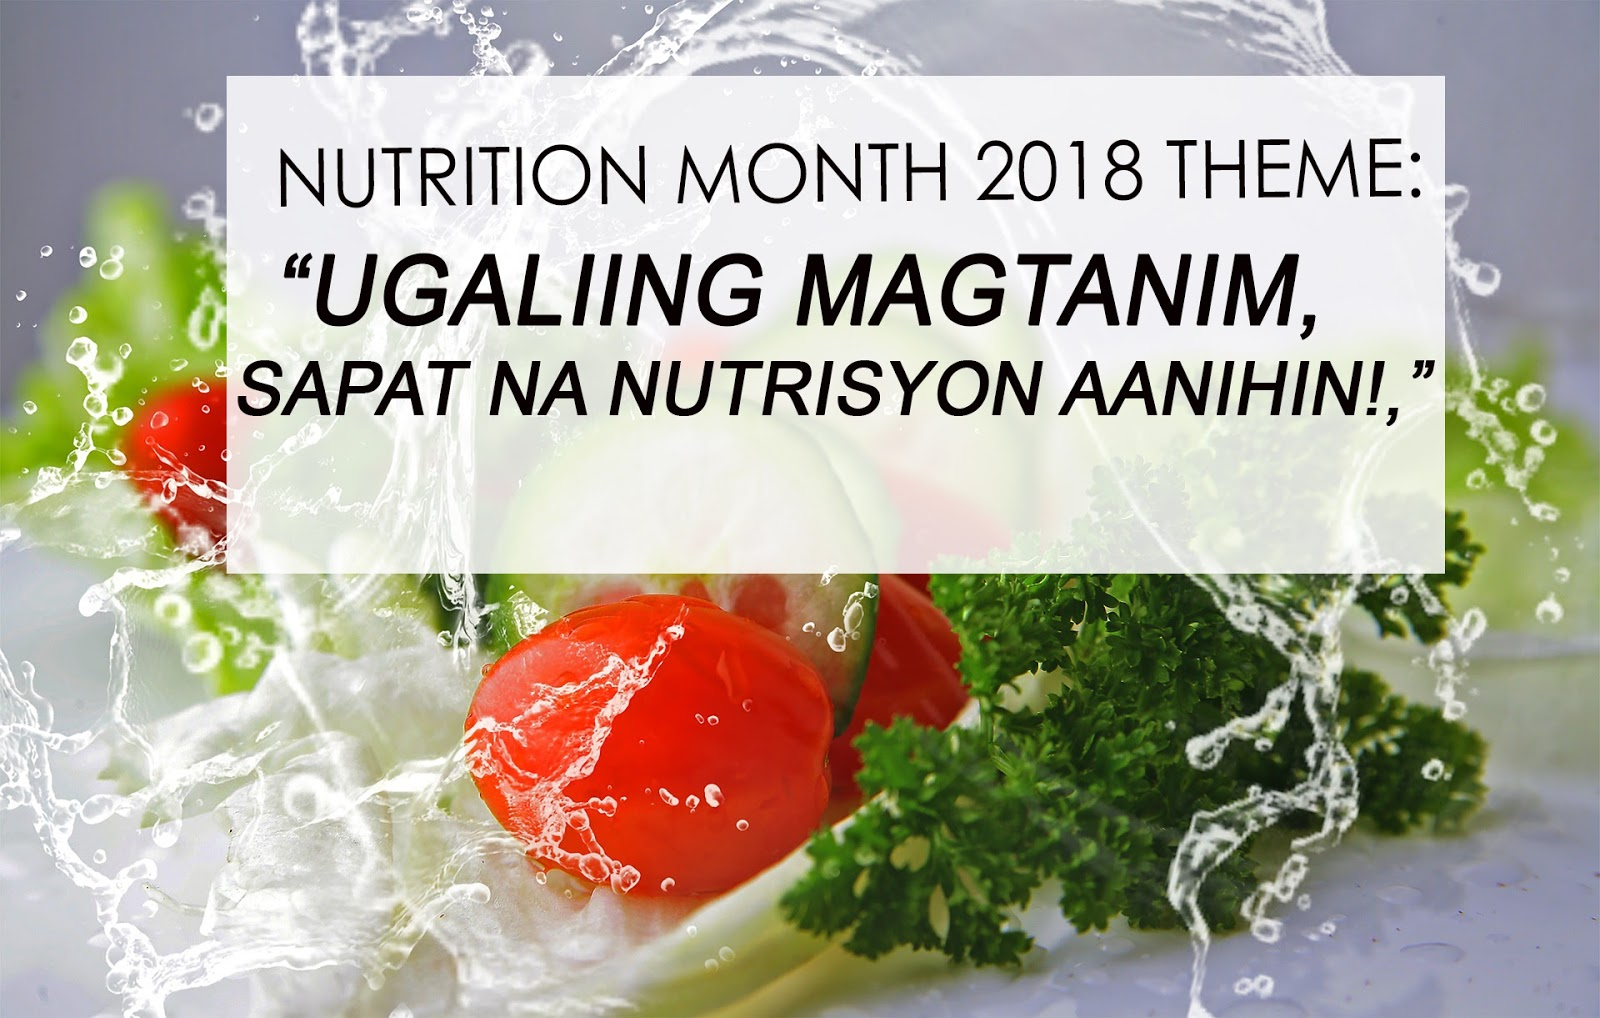 All About Nutrition: Nutrition Month Theme 2018 Logo Deped